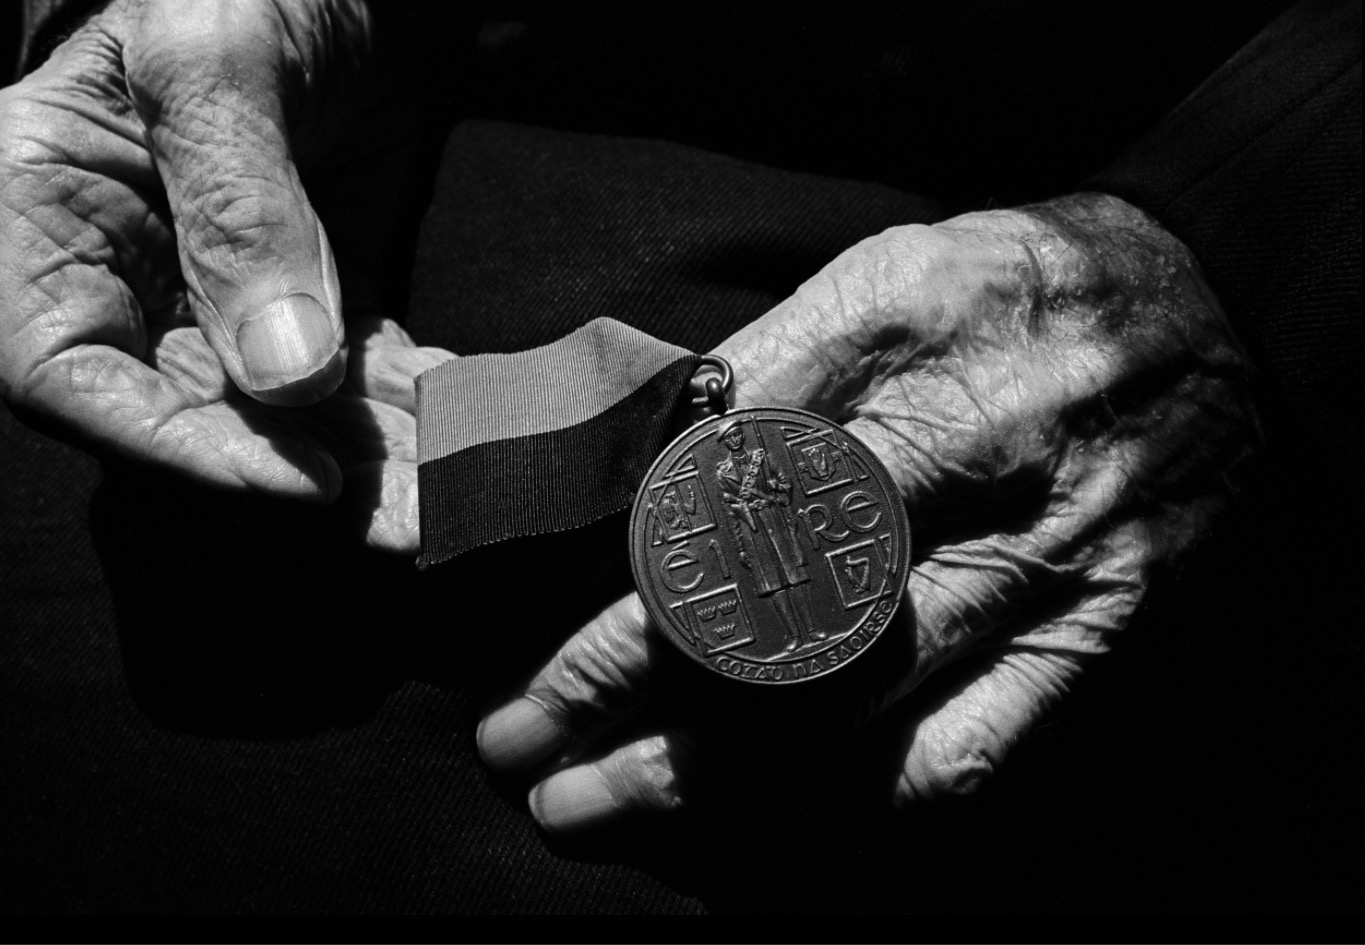 Seamus Murphy: The hands of Batt Moriarty at home in County Cork holding his 'Black and Tan' medal awarded to IRA men who fought in Ireland's War of Independence with Britain. Batt Moriarty -Cork No. 4 Brigade. Intelligence Officer. IRA 1918-1923. | Seamus Murphy: Citizens | from 20 November 2020  | Source Arts Centre